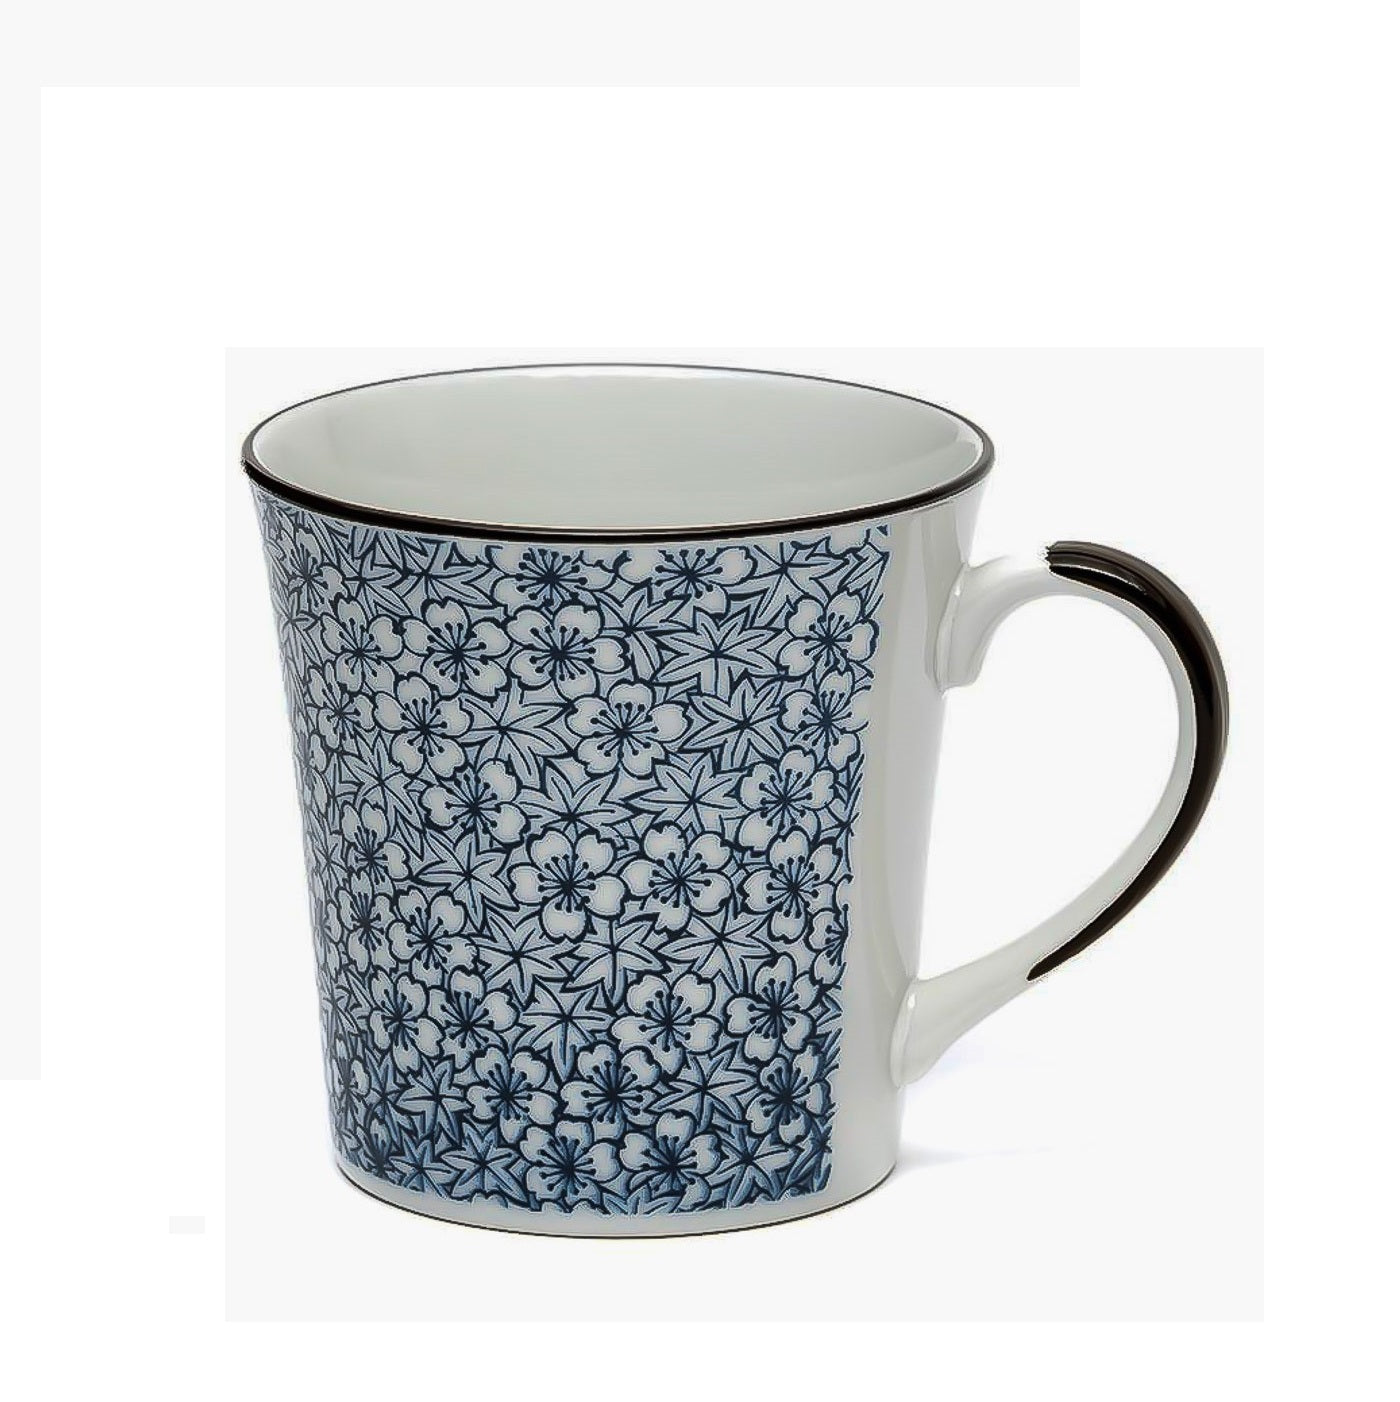 Tea Cups And Mugs Japanese Style Online At Maisie Clare